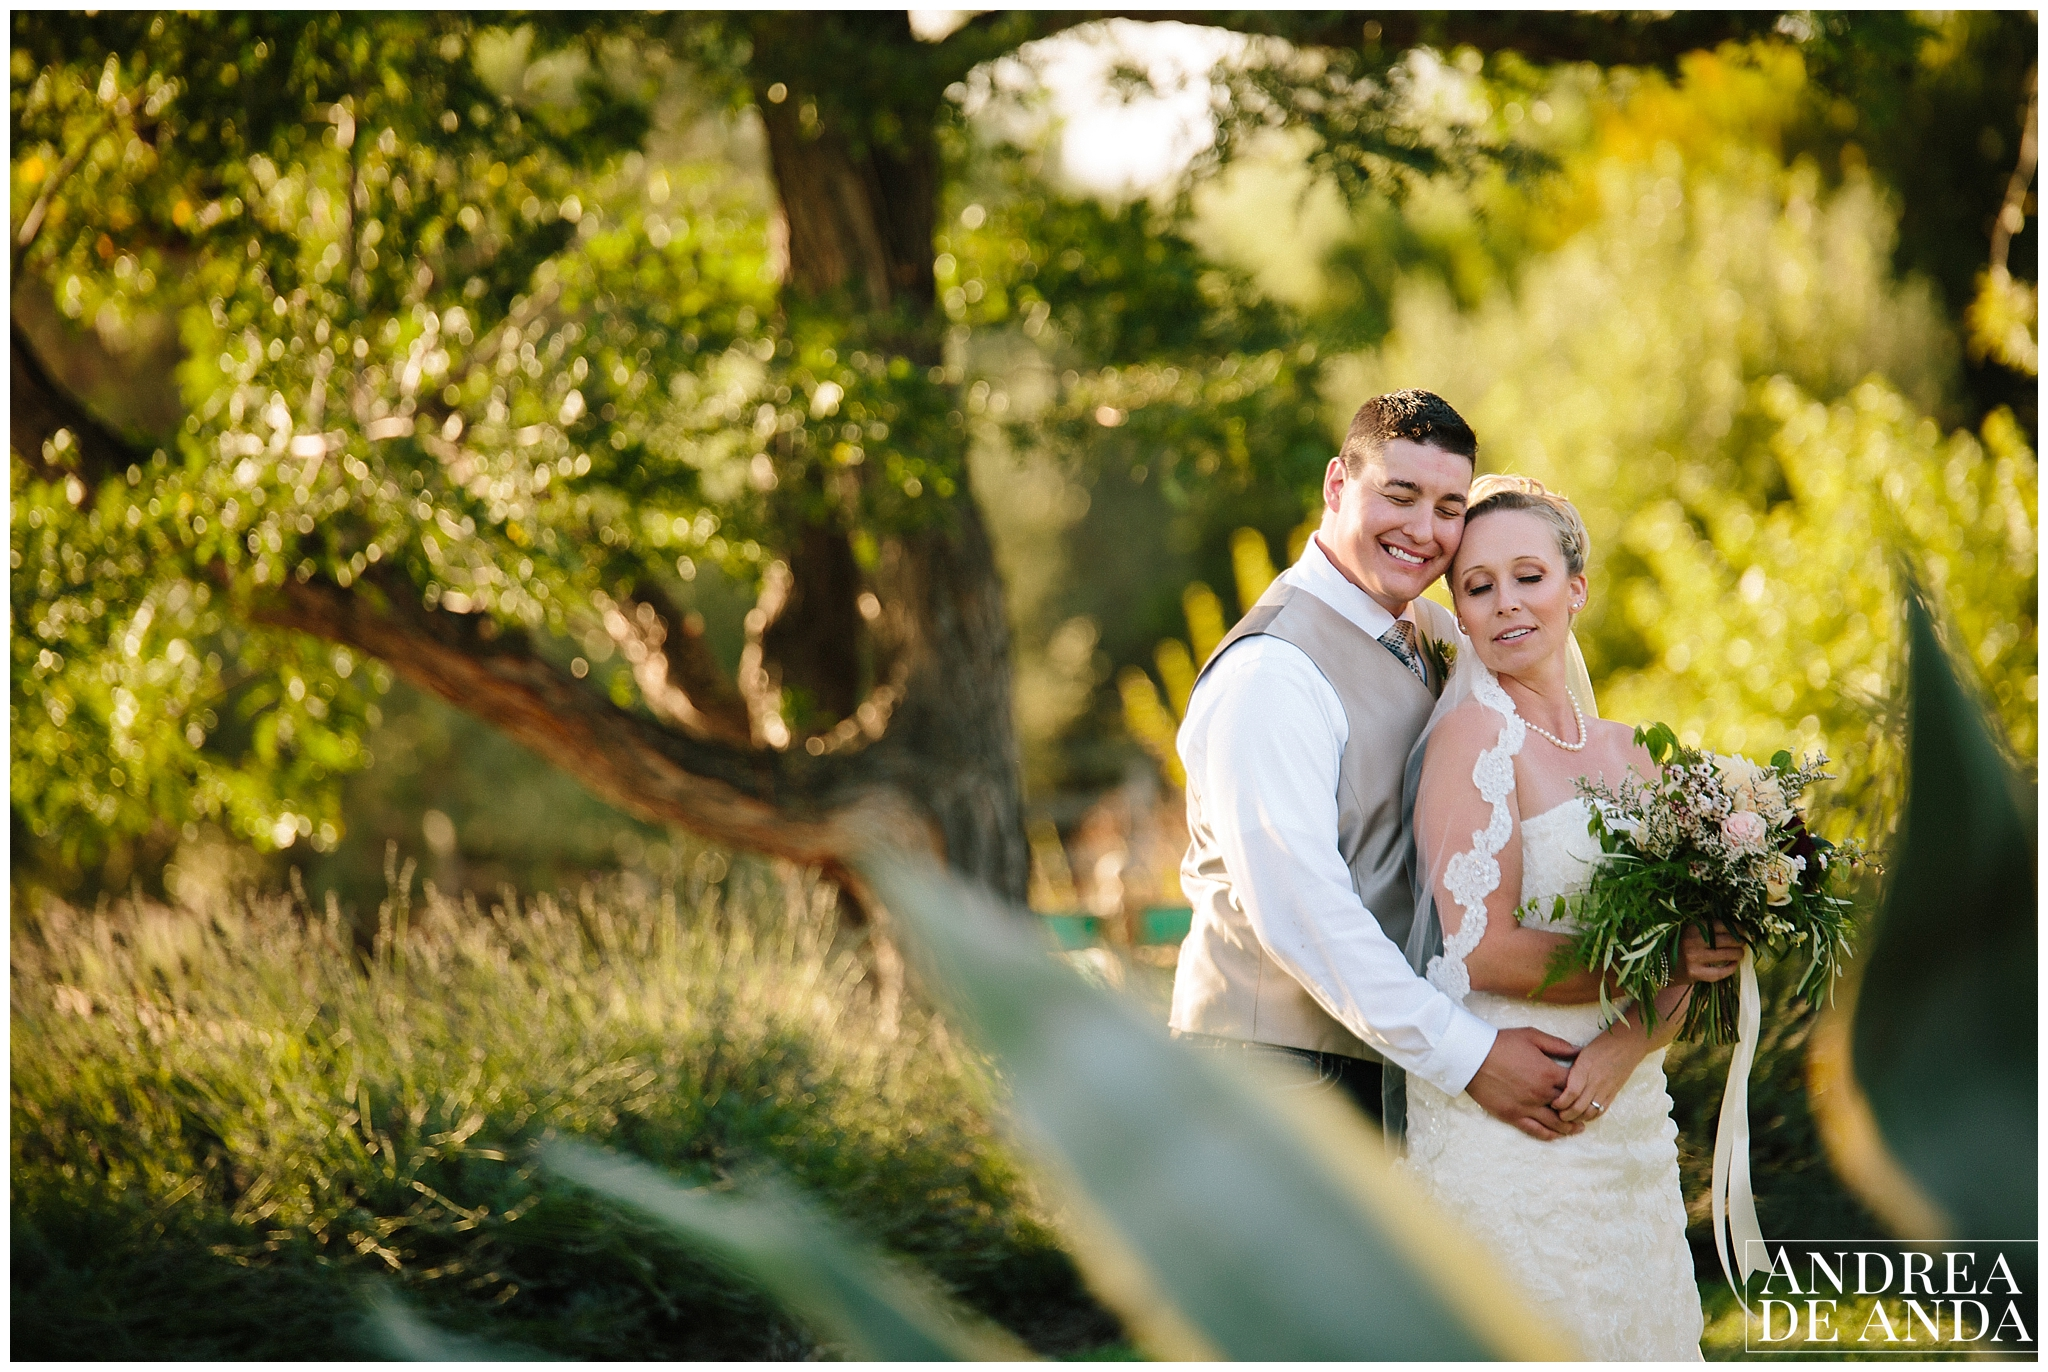 Santa Ynez Valley back yard wedding_Andrea de Anda Photography__0058.jpg